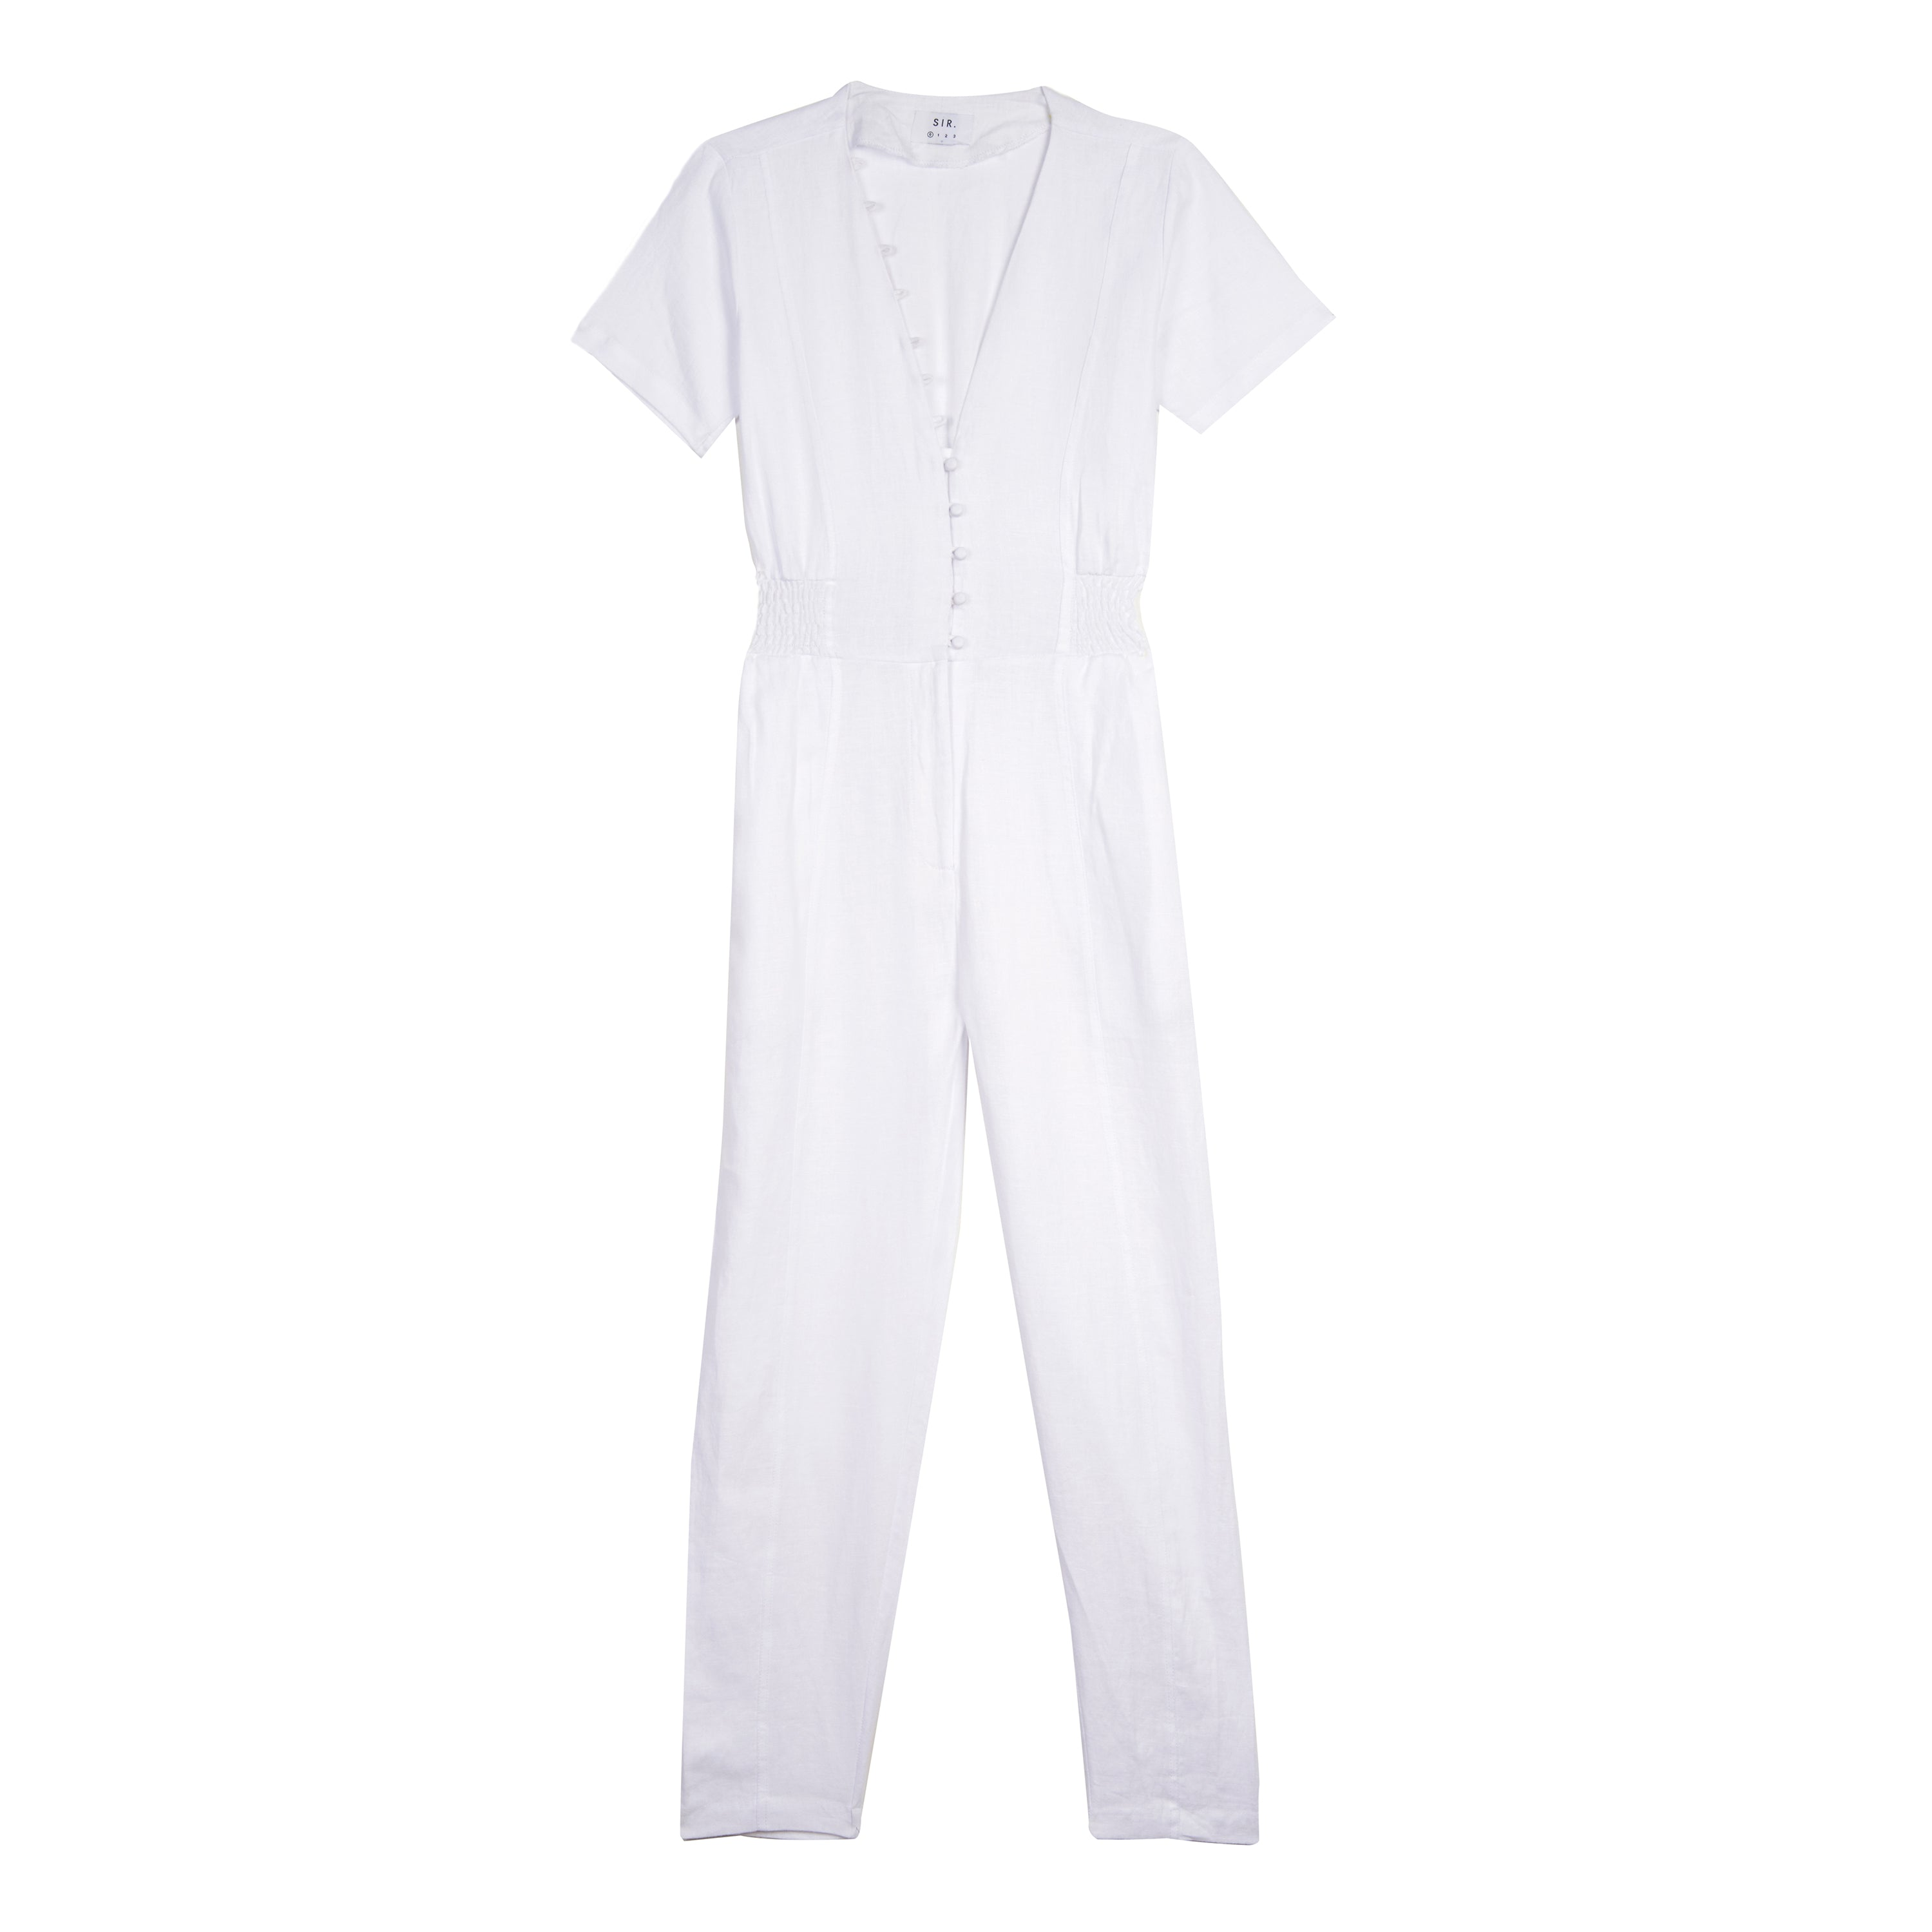 ONLY ONE LEFT - Inaya linen jumpsuit